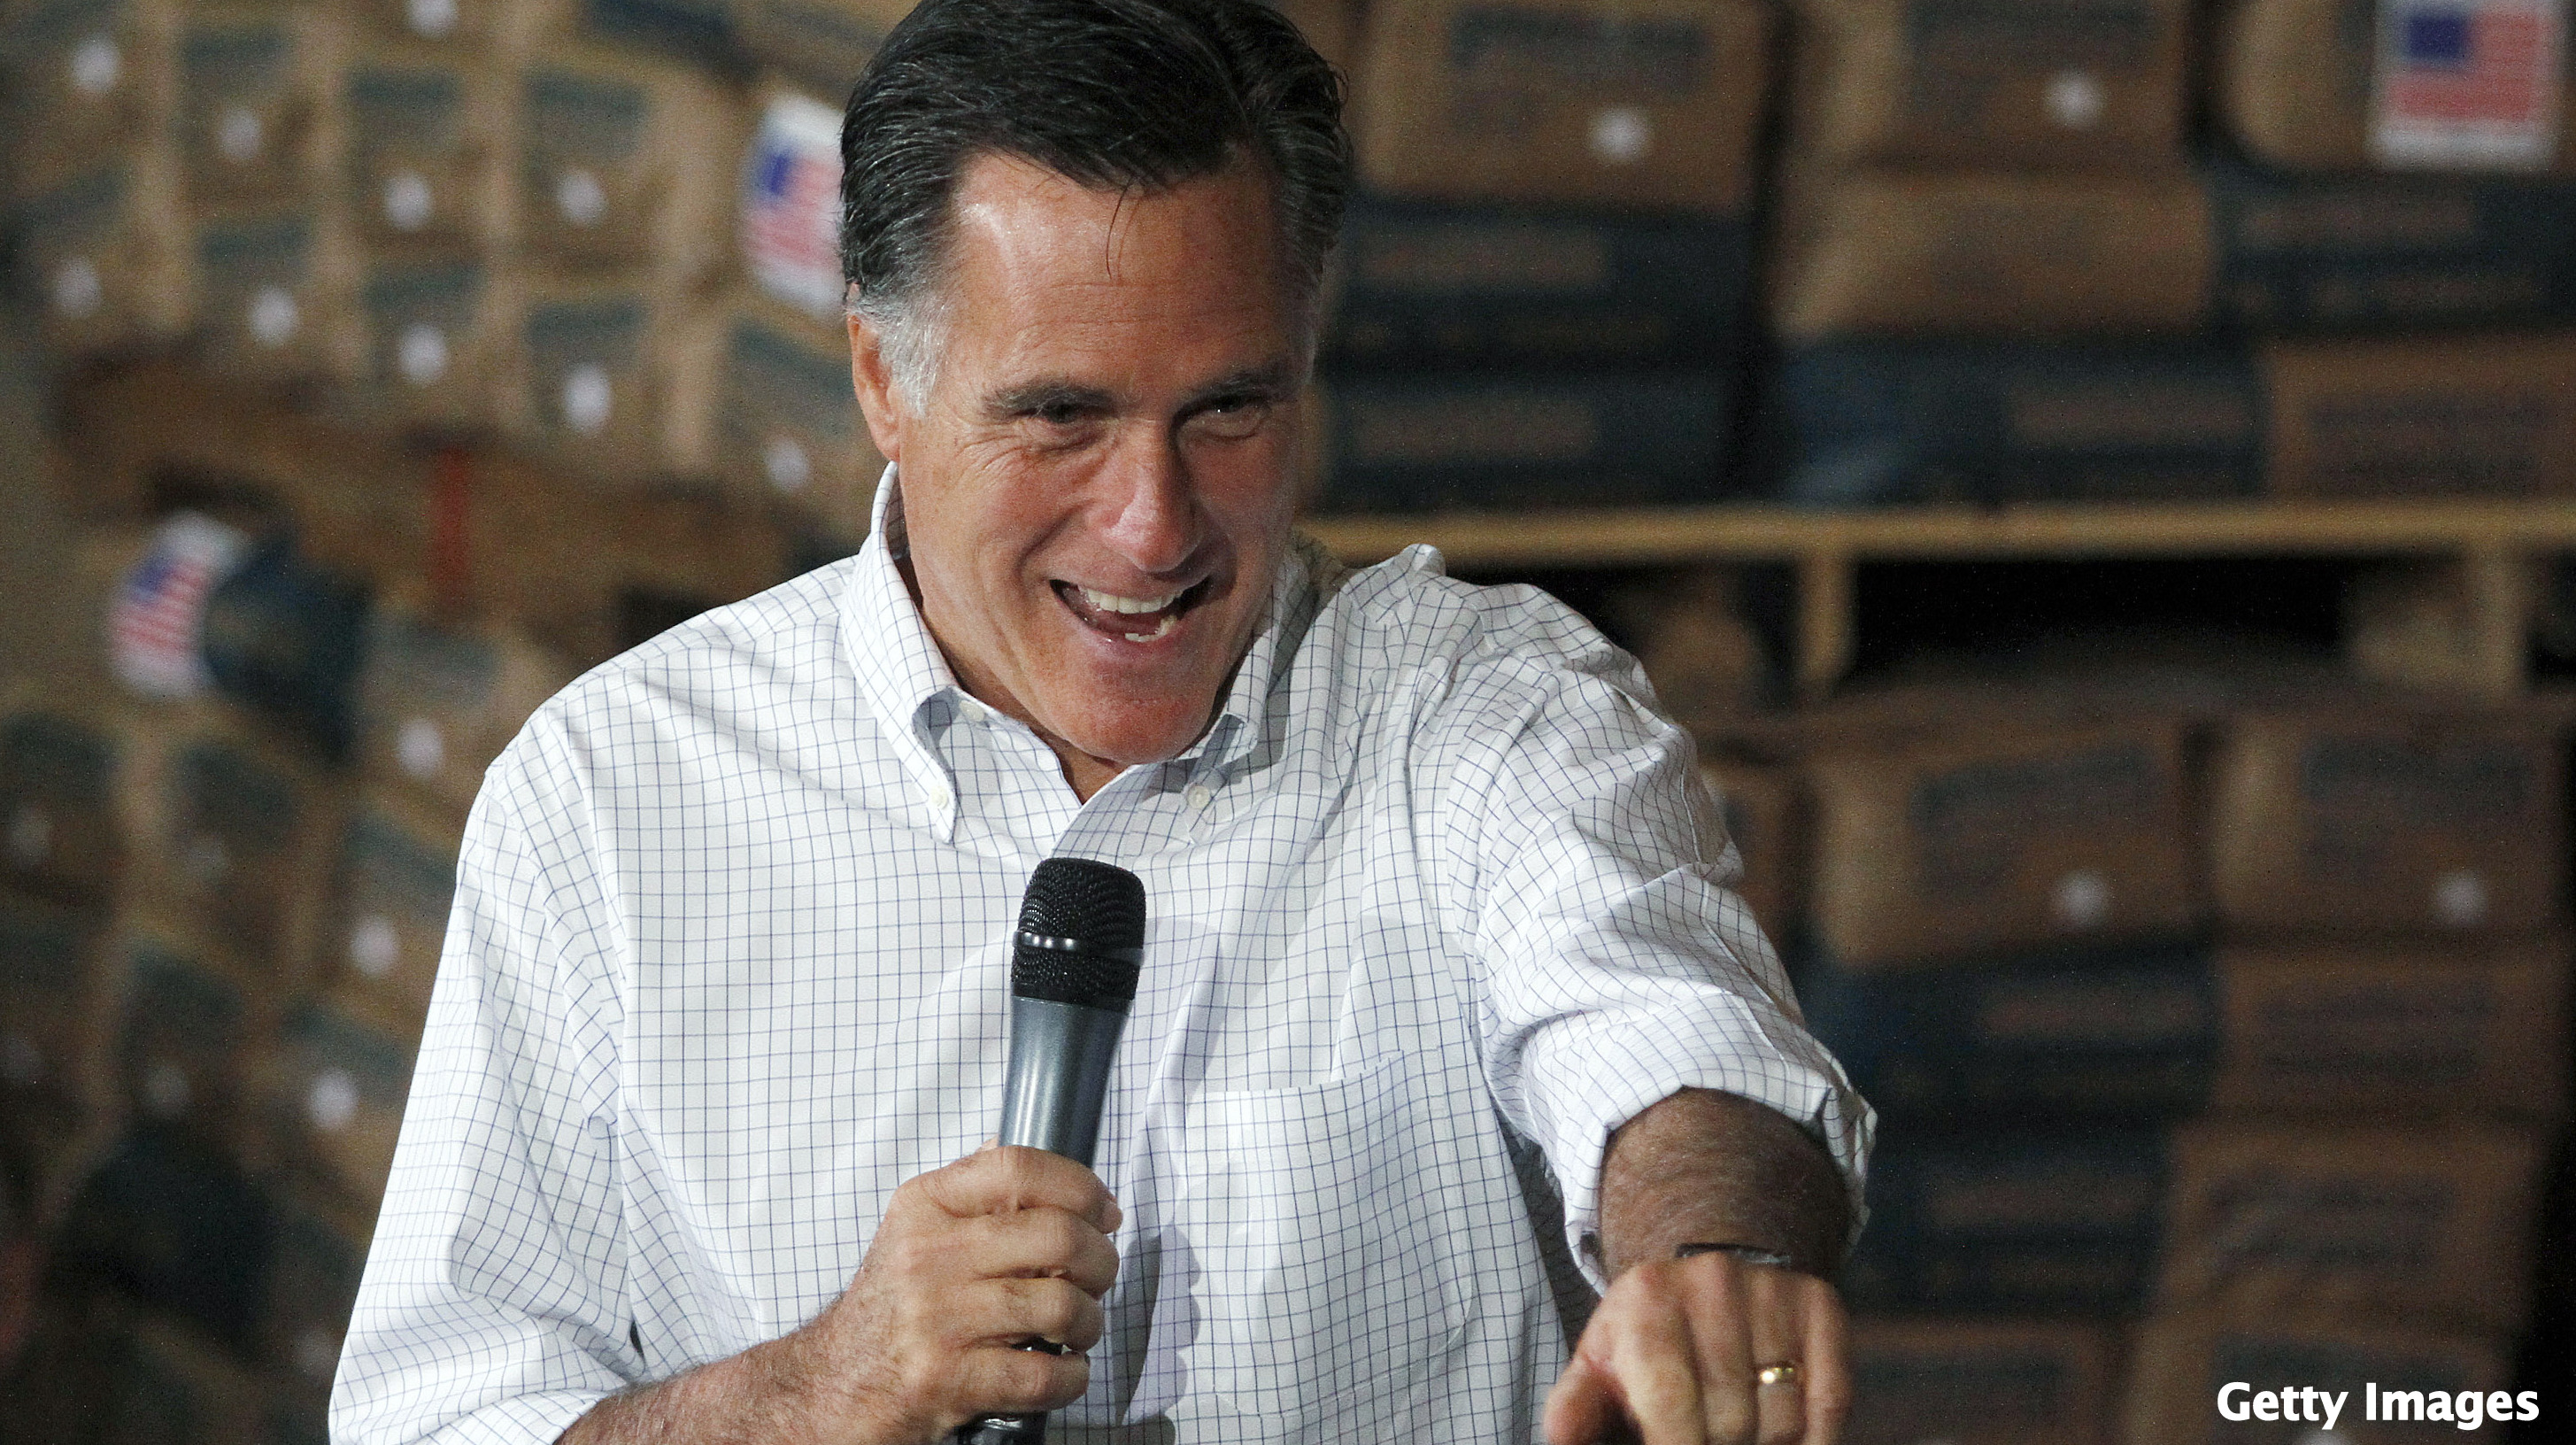 Romney's June fund-raising tops $100 million